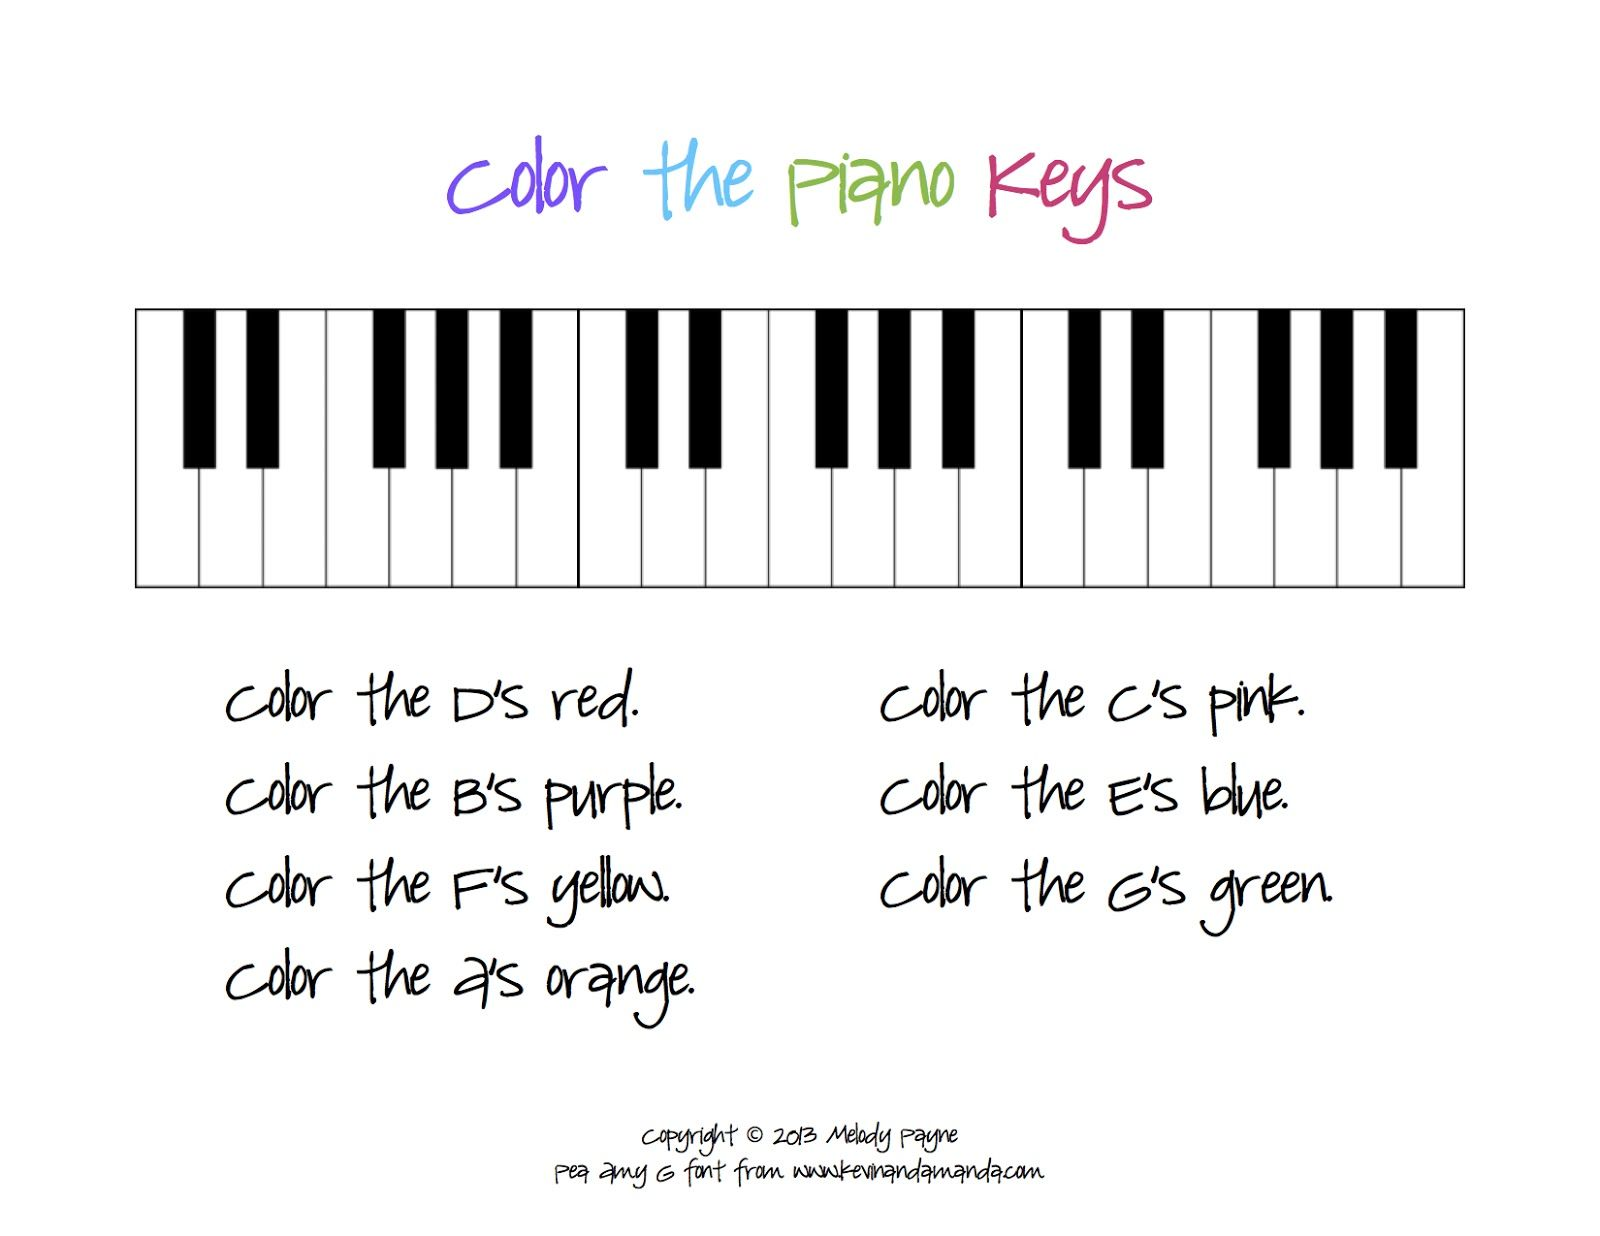 Color the Piano Keys Sheet | Piano keys, Pianos and Key